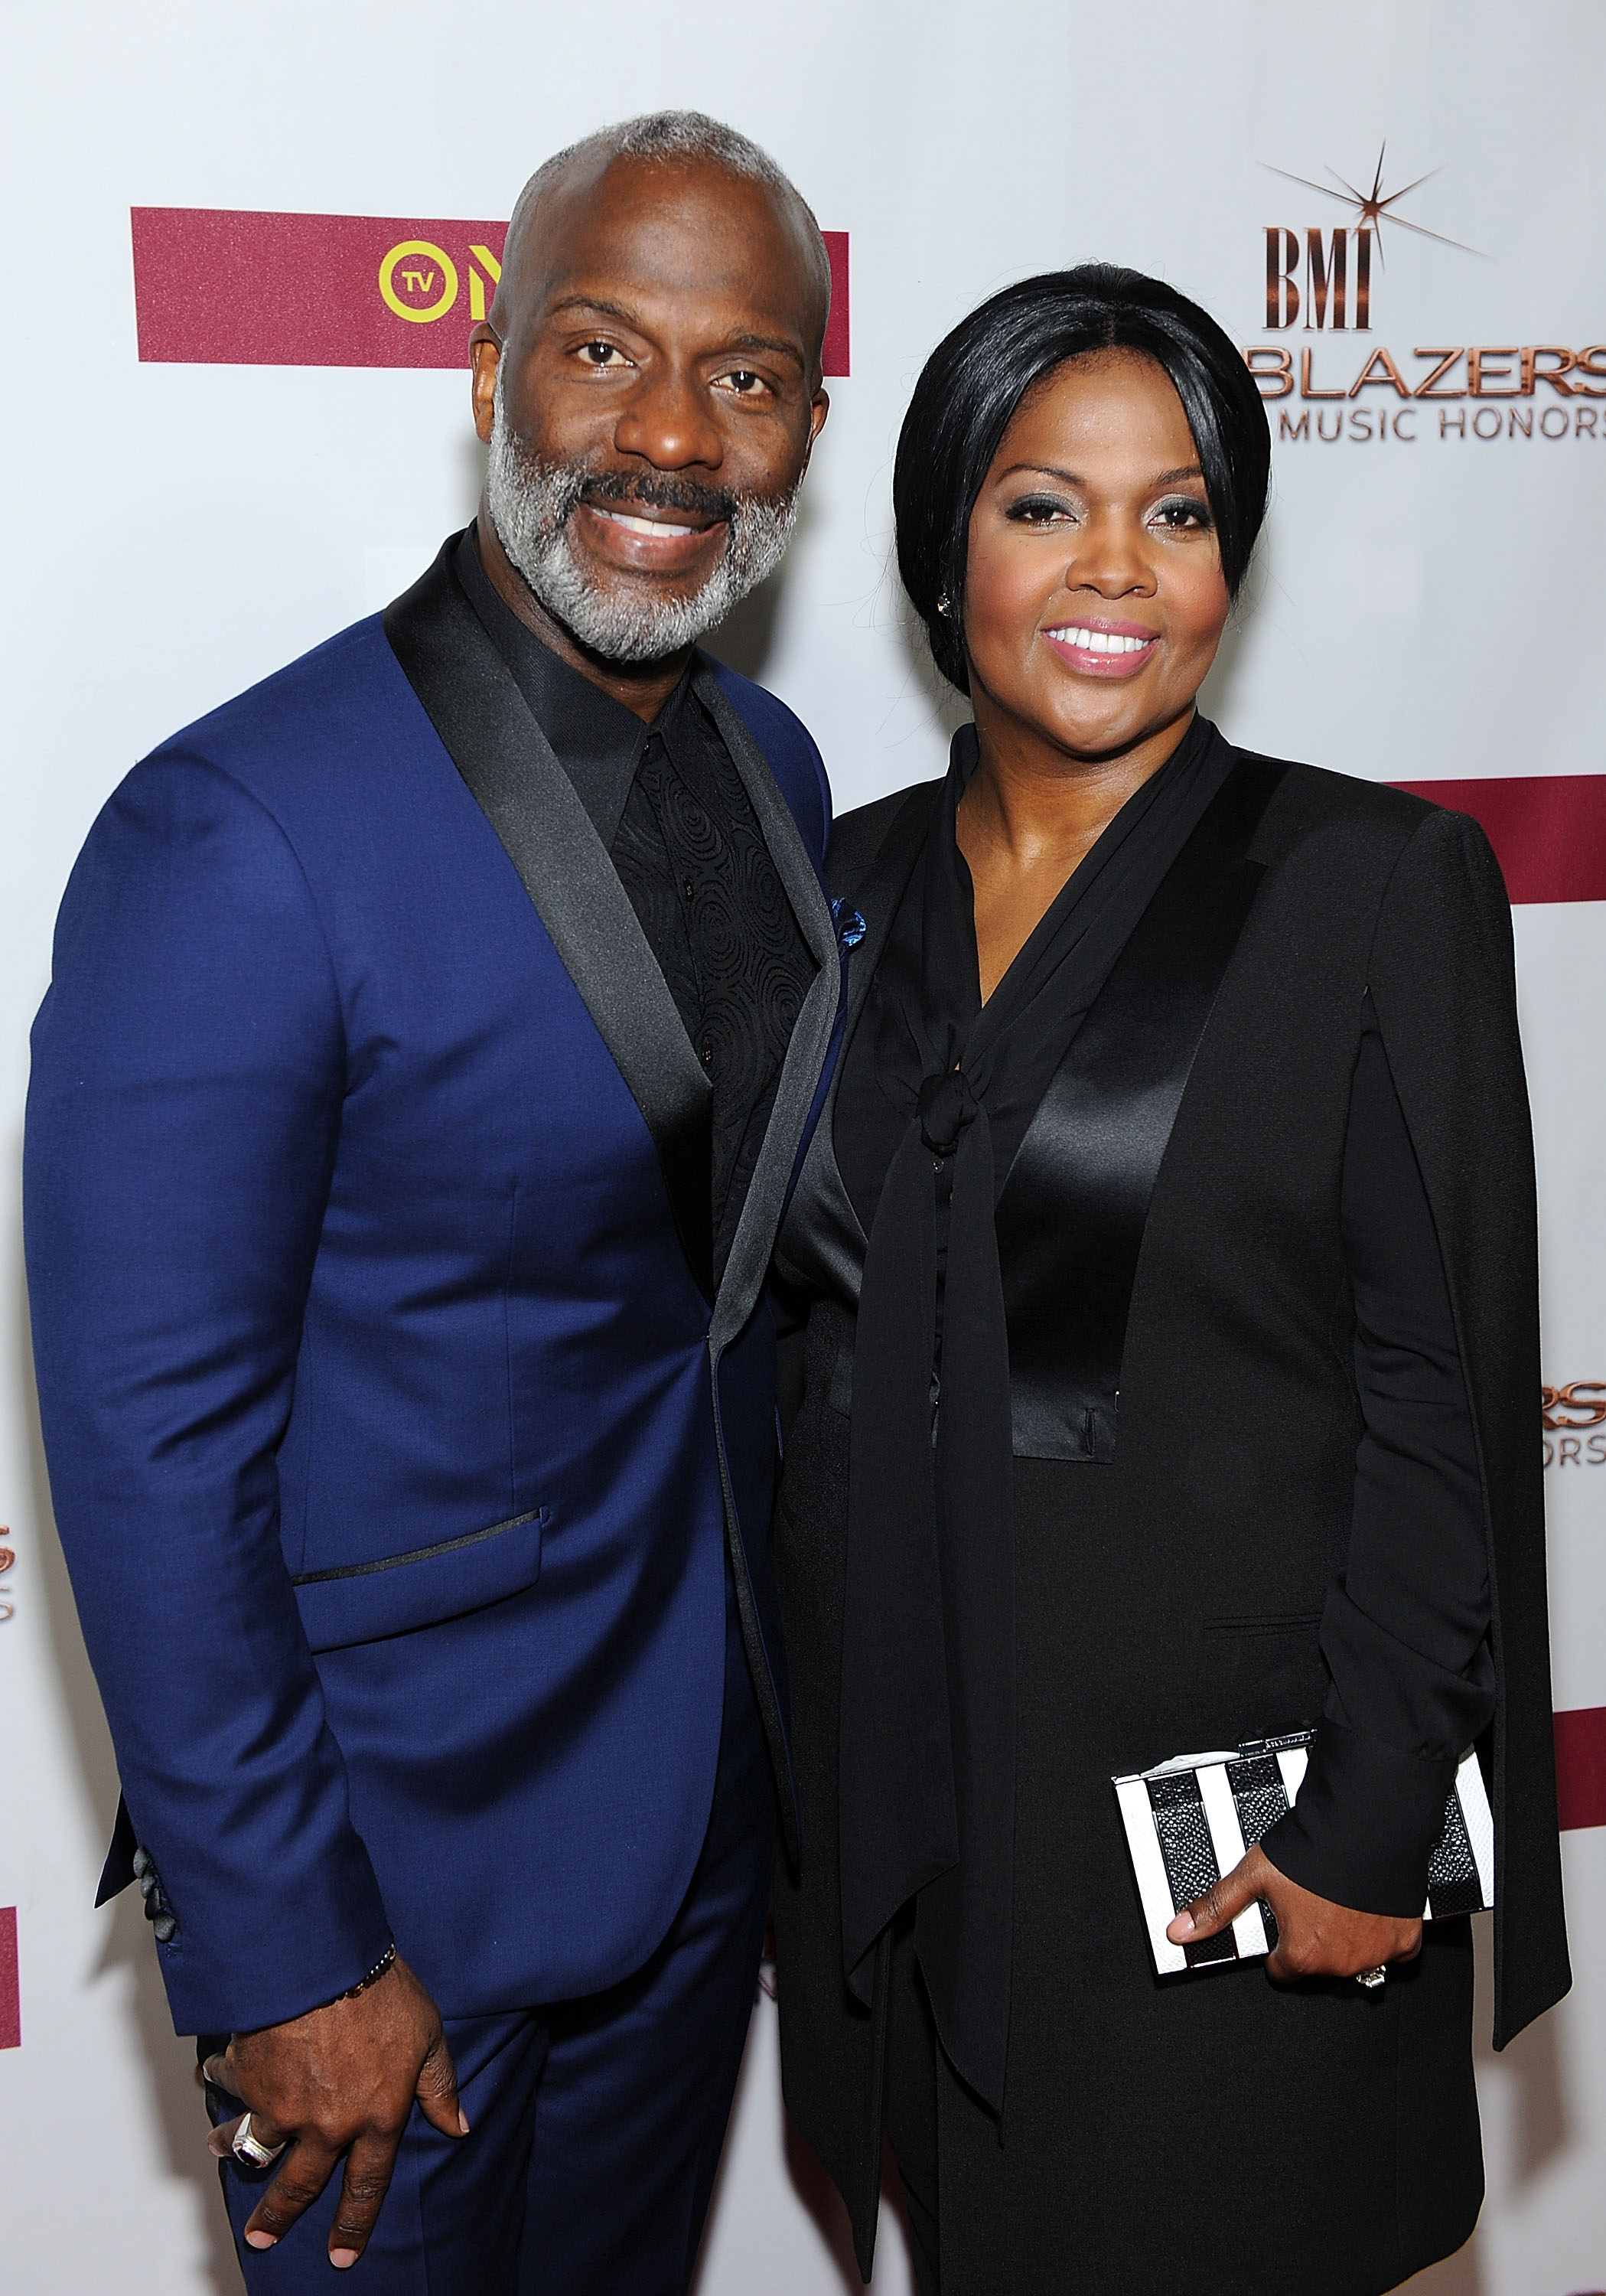 BeBe and CeCe Winans at the 2016 BMI Trailblazers of Gospel Music Award Show on January 16, 2016 l Source: Getty Images